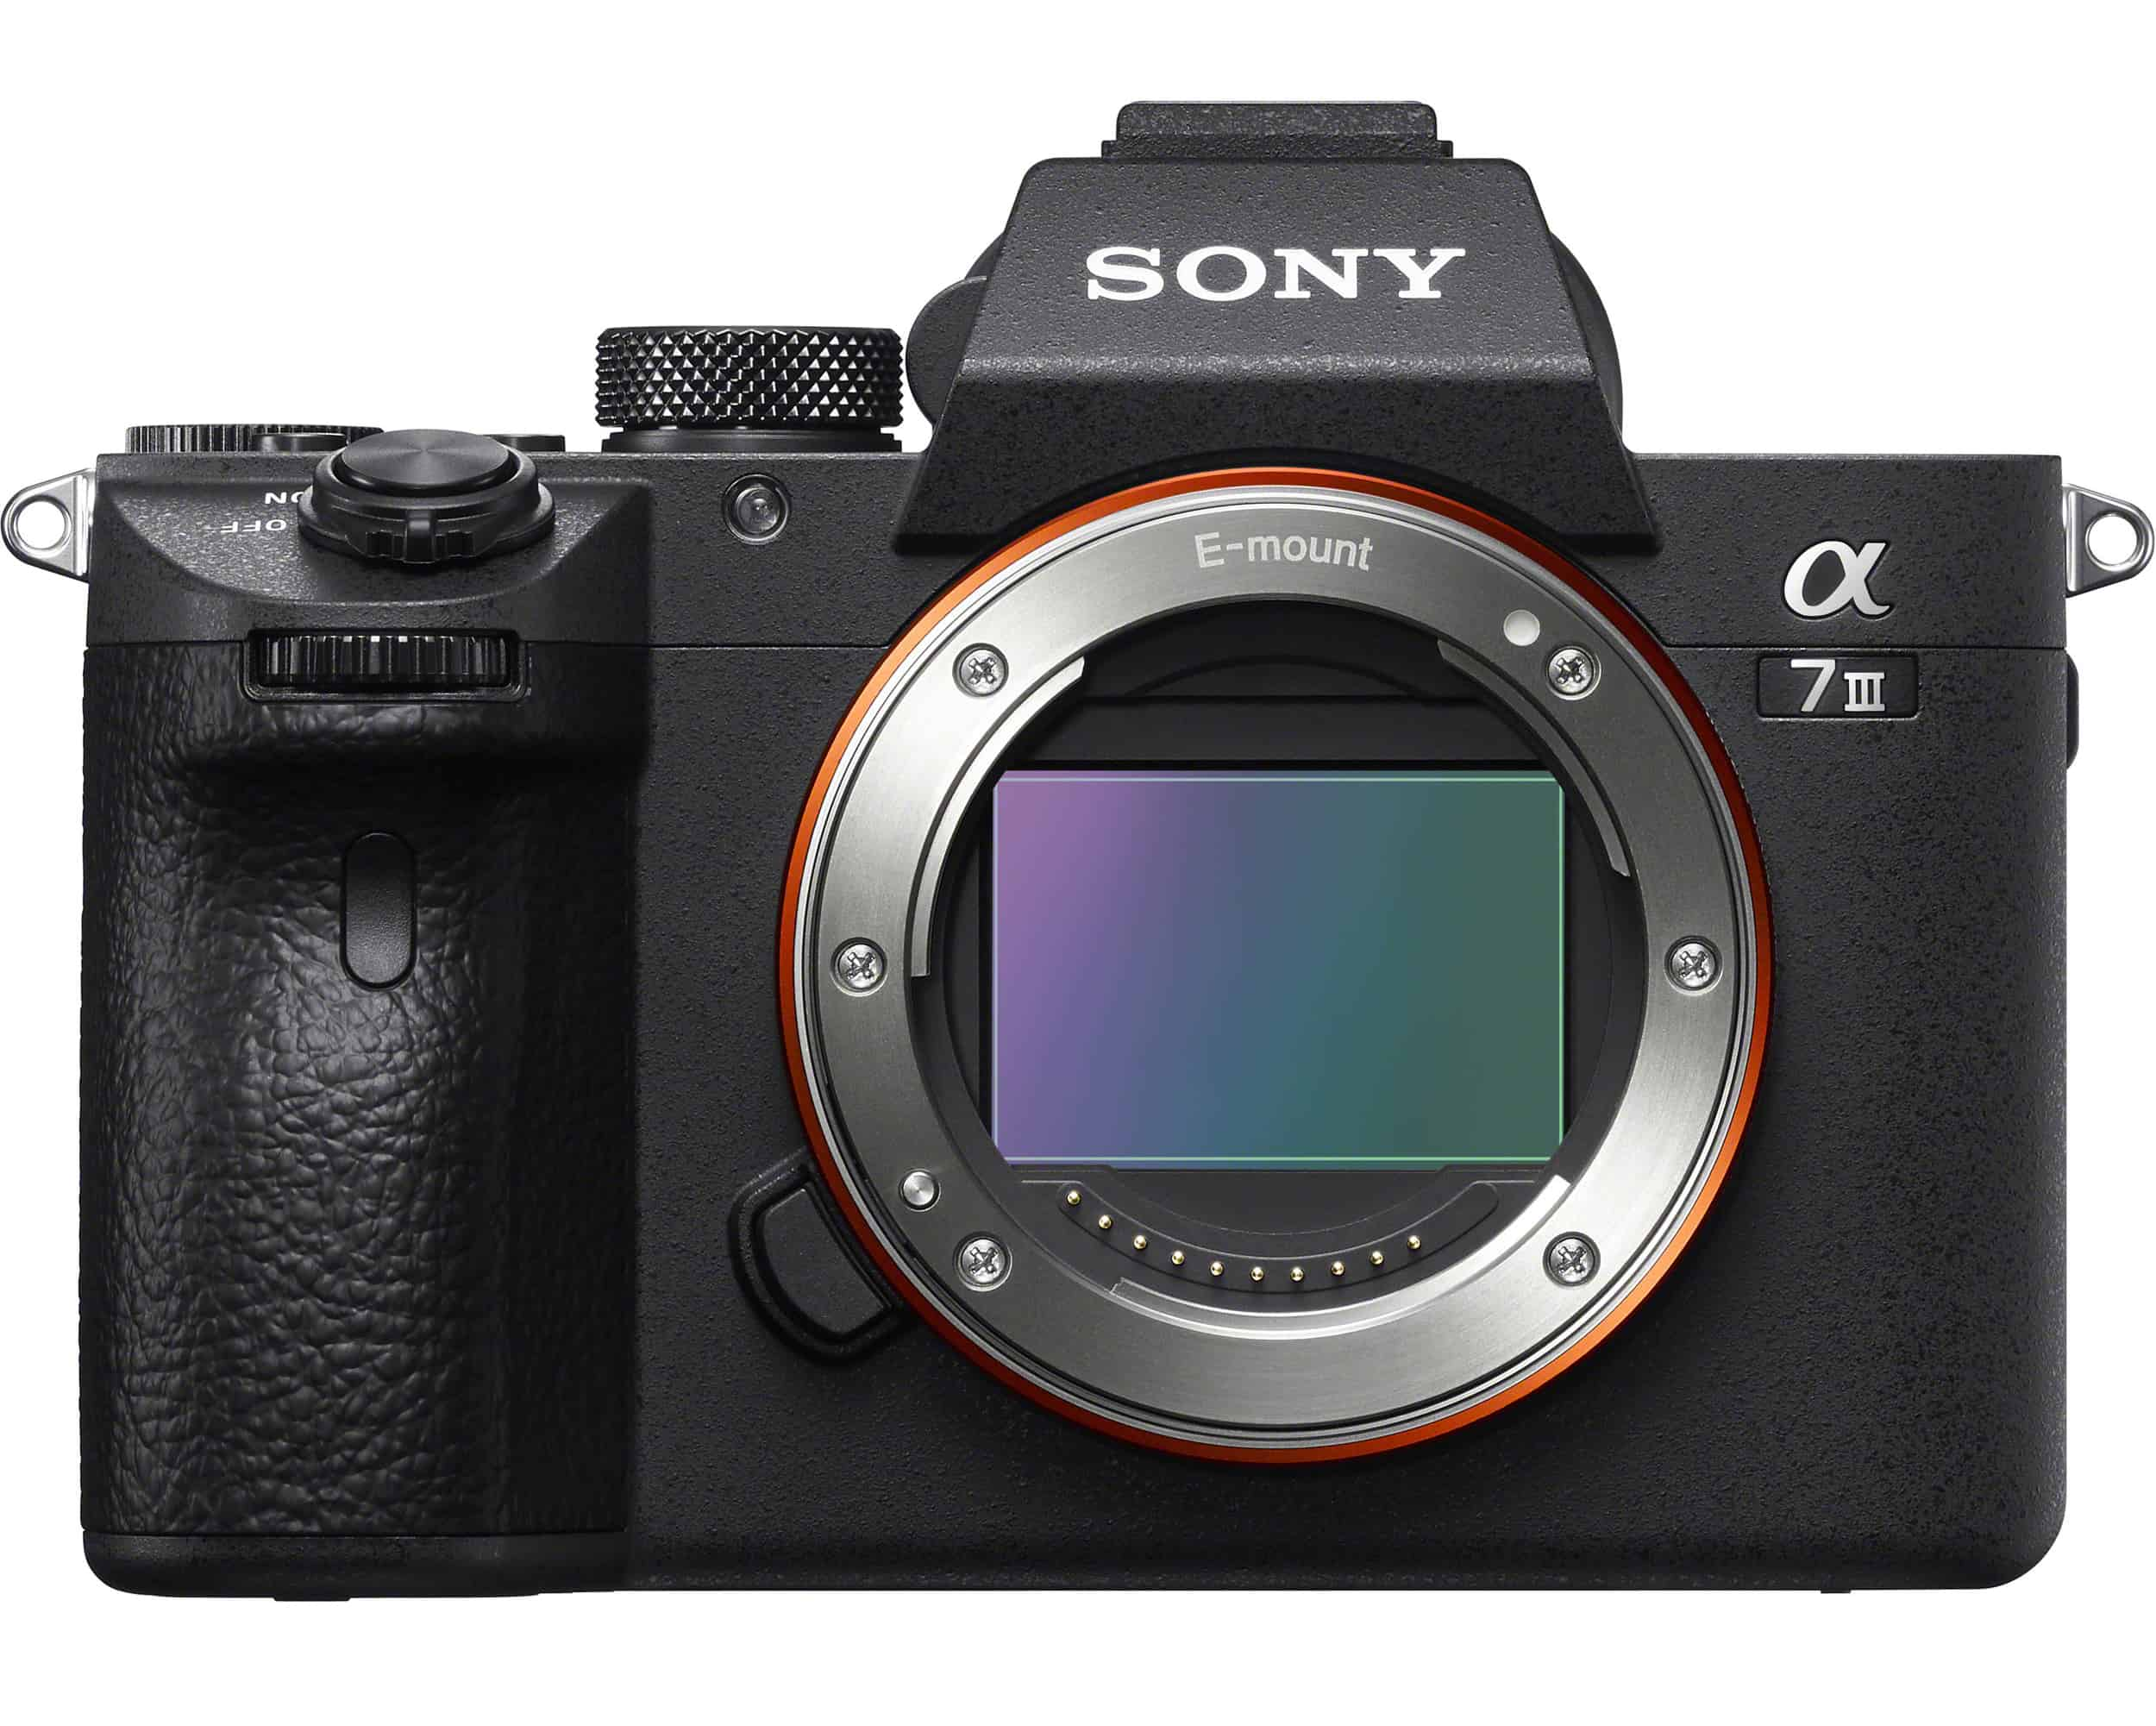 Sony a7III low light camera